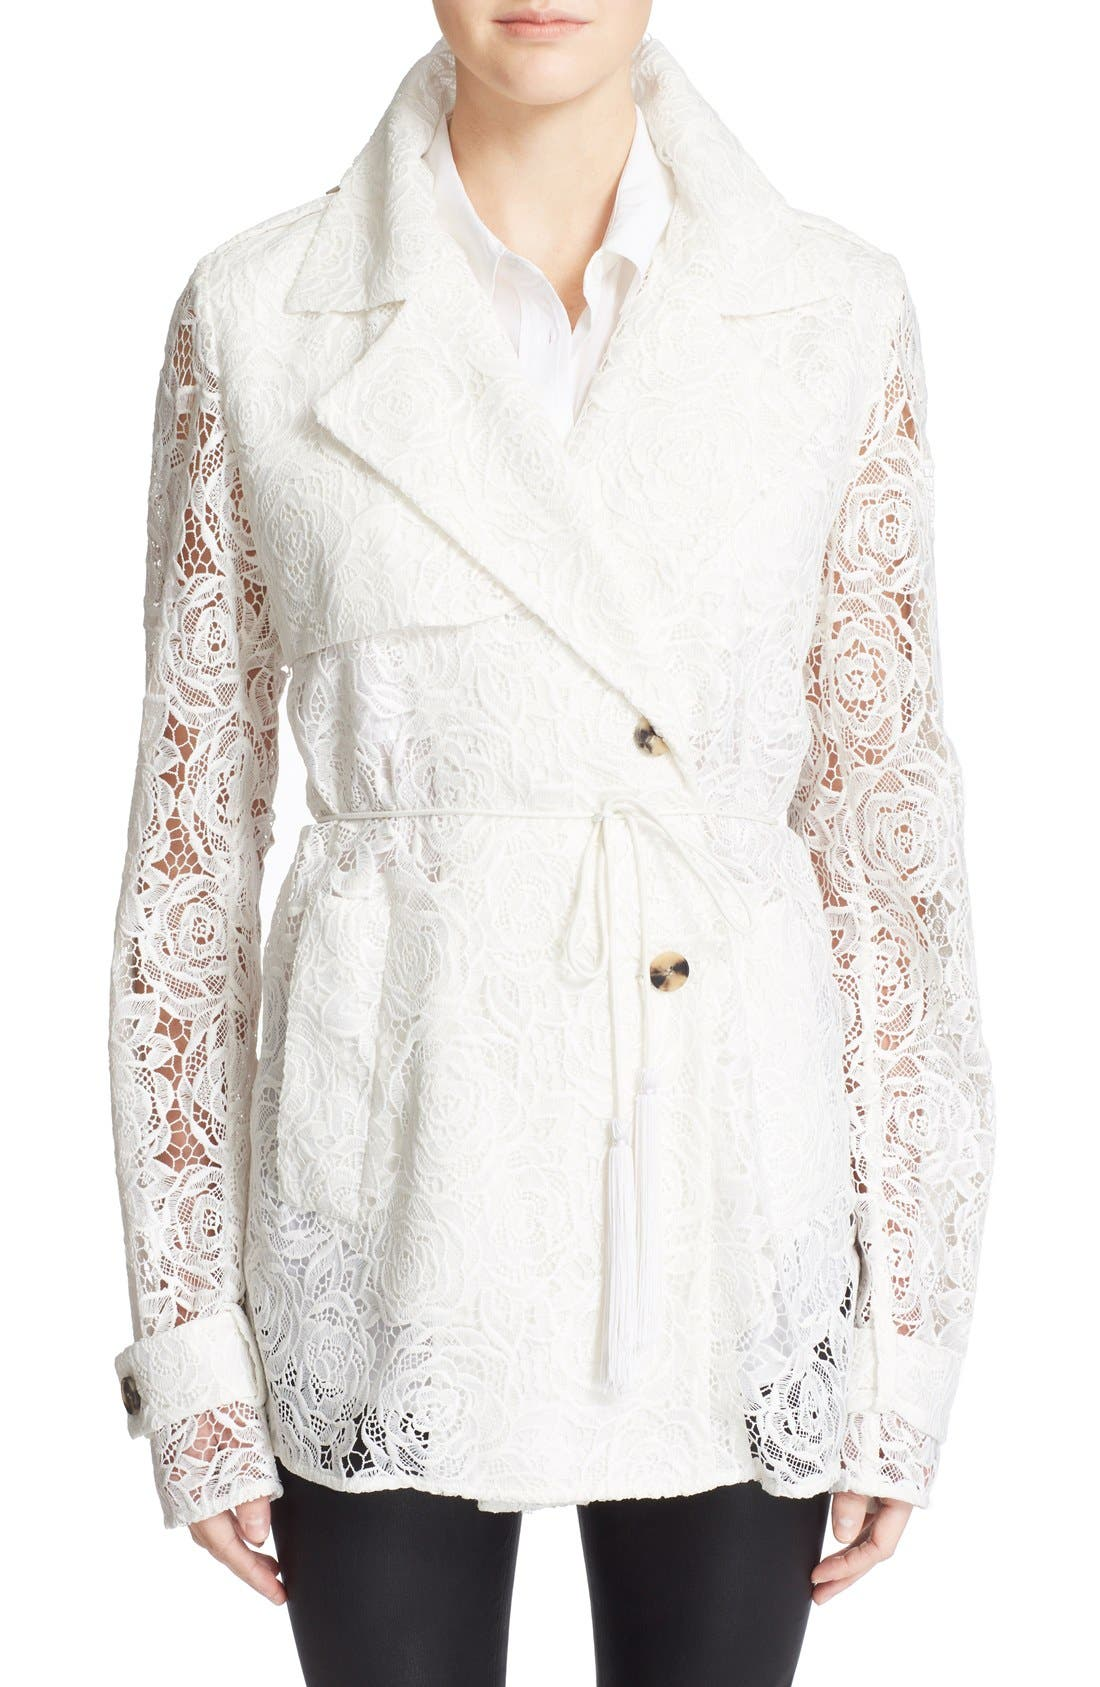 Alternate Image 1 Selected - McQ Alexander McQueen Drawstring Floral Lace Trench